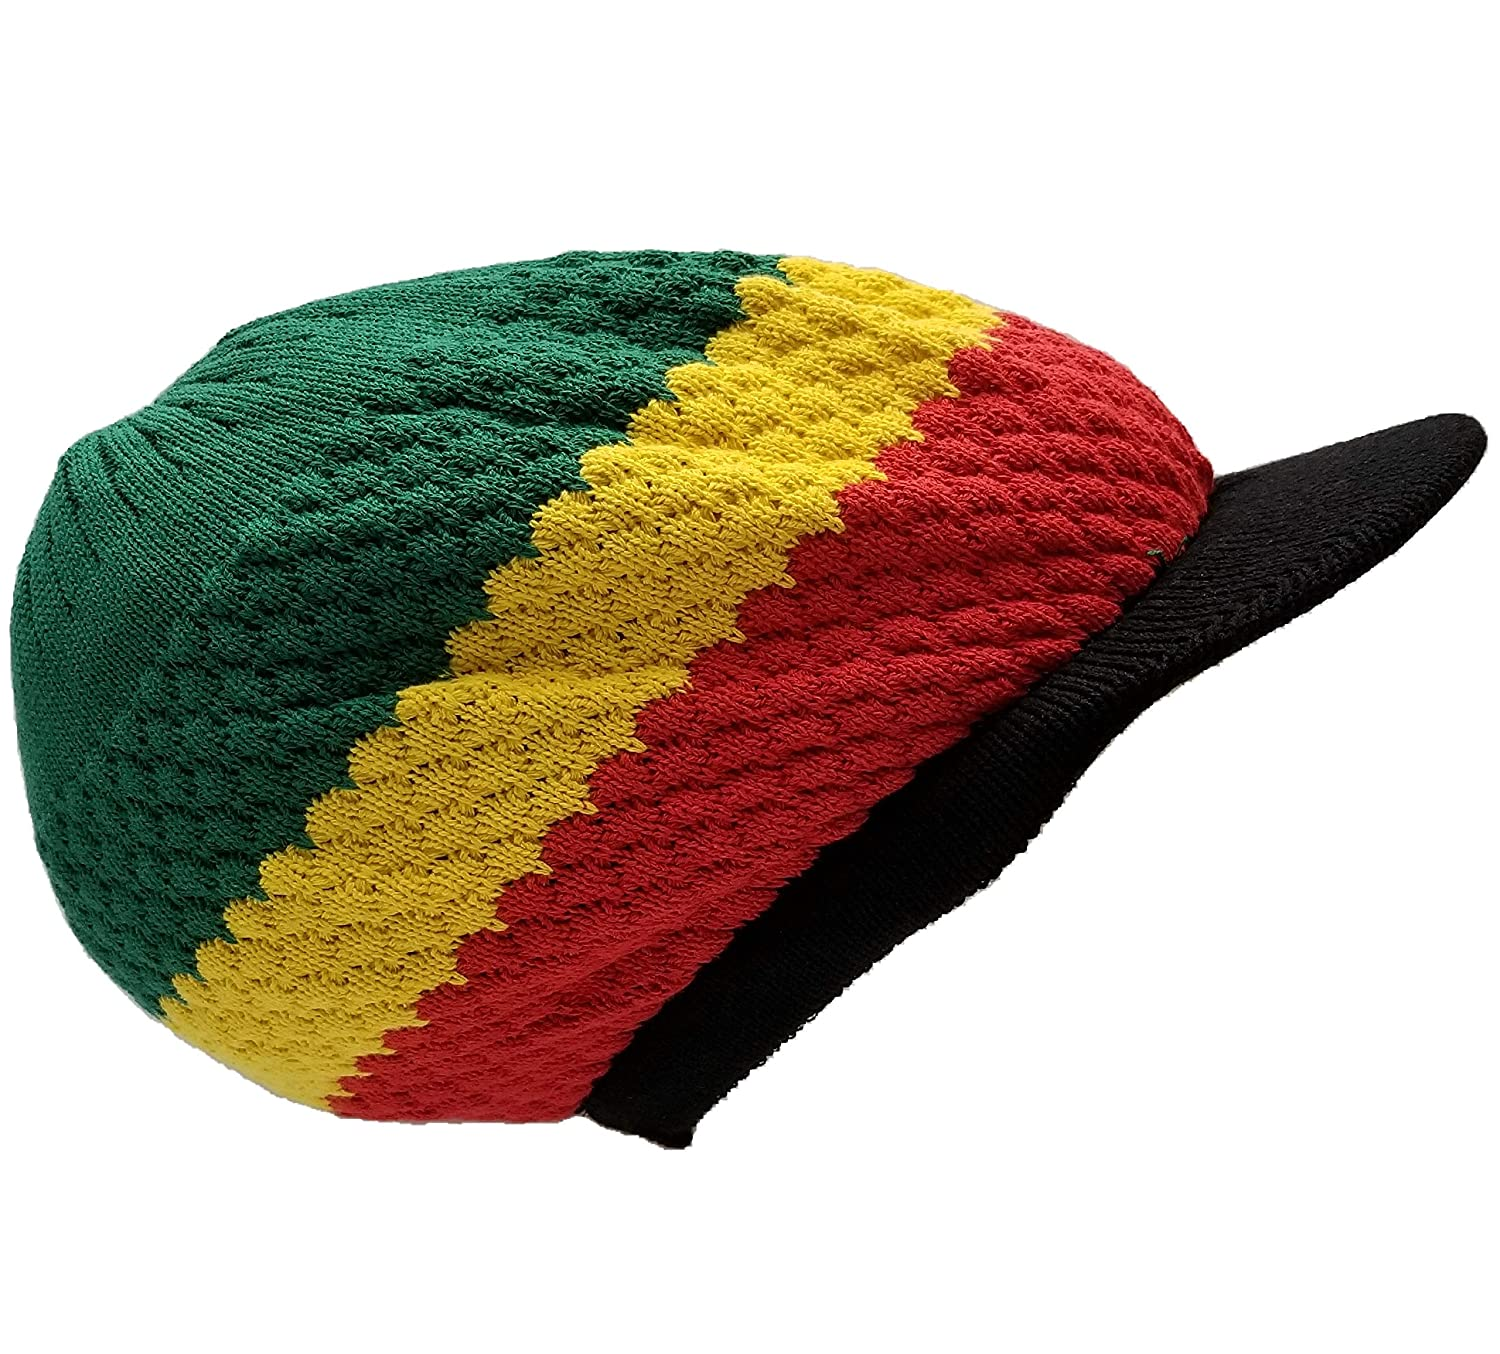 ef1610986 Jamaica Dreadlocks Rasta Hat Cap Marley Crown Reggae Selassie Roots ...